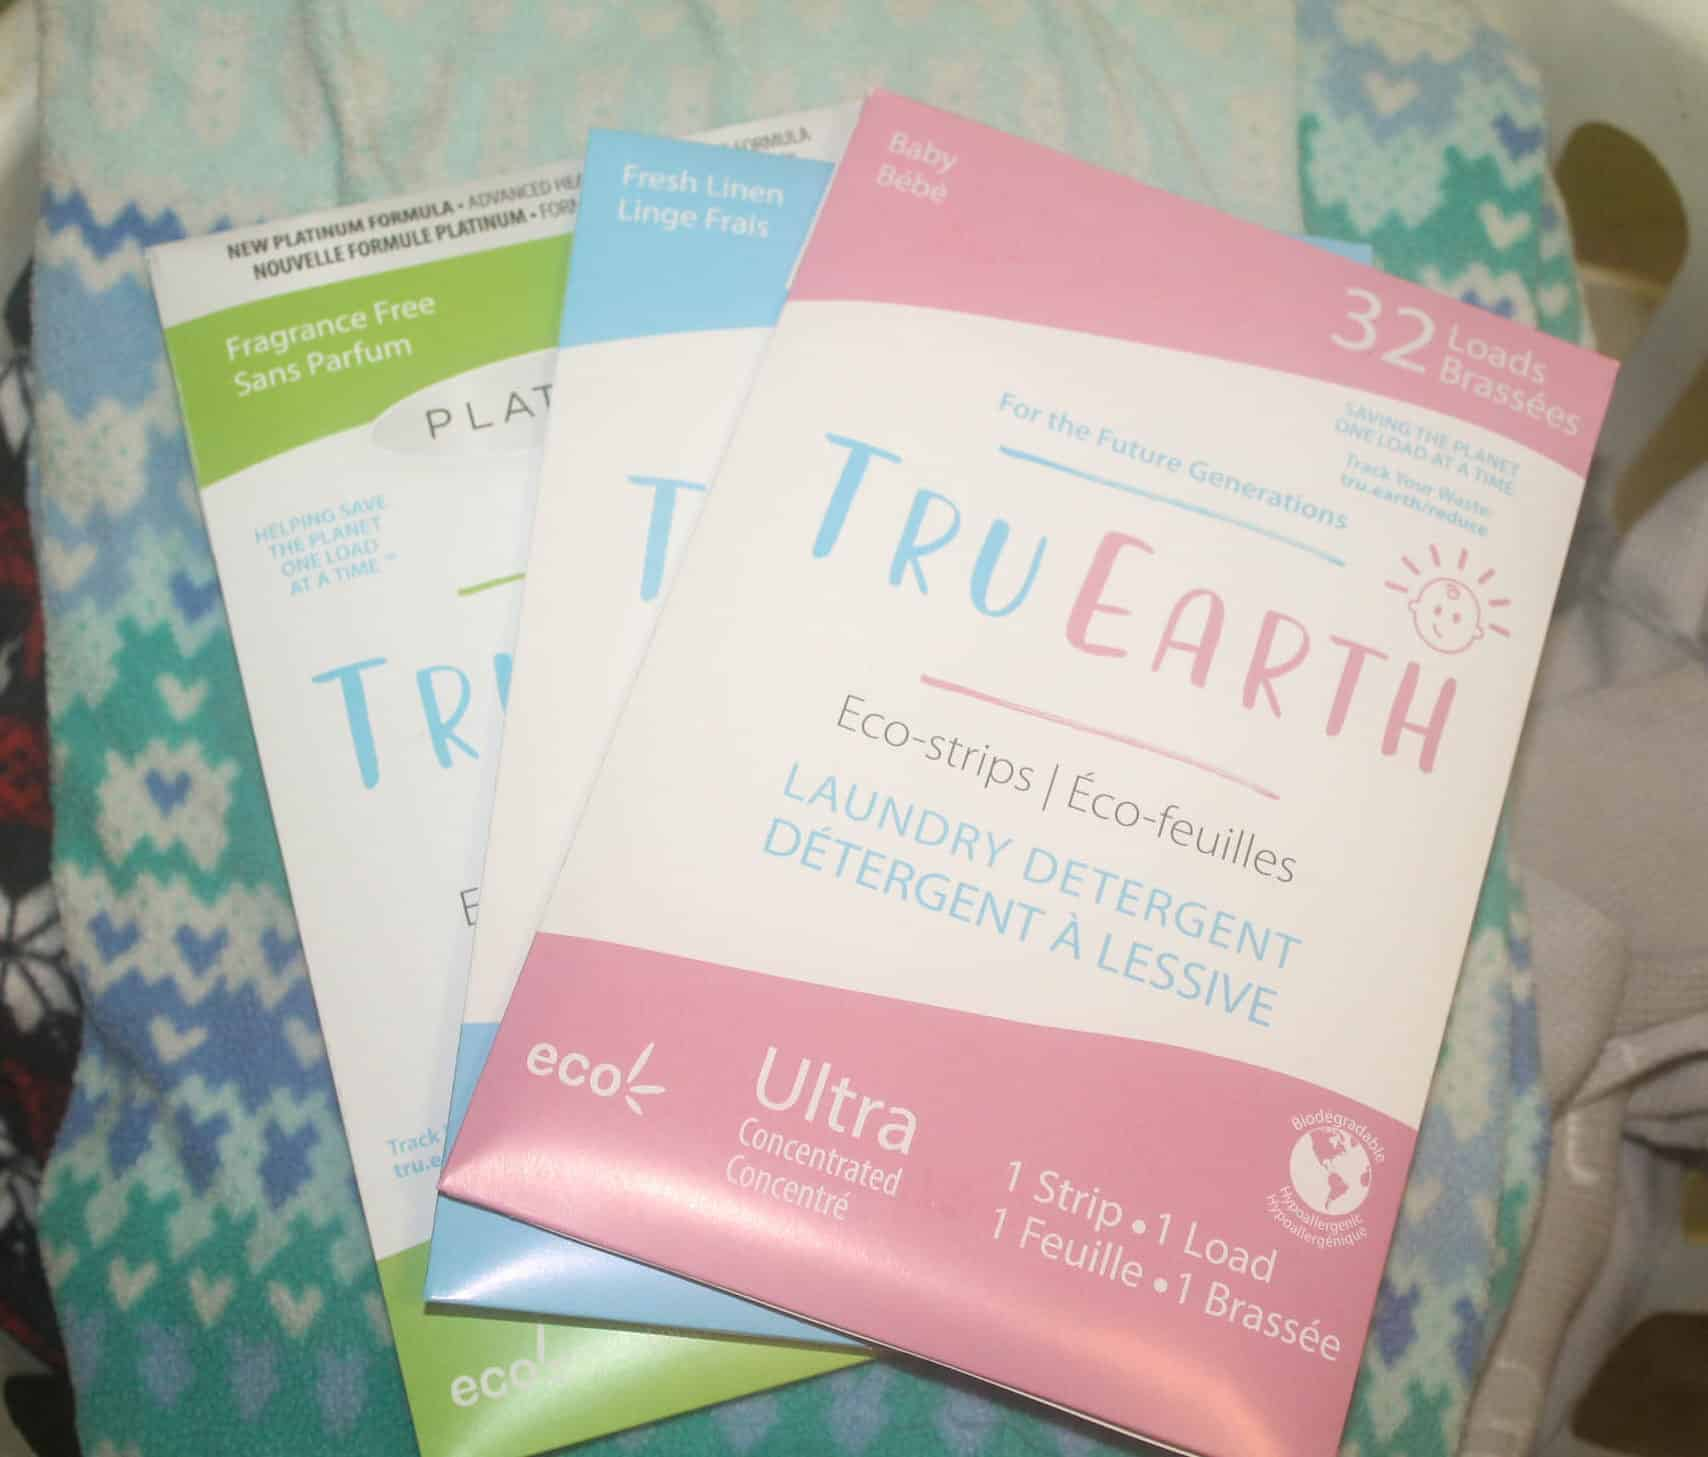 Tru Earth Laundry Eco Strips Review 7 Tru Earth Eco-strips Laundry Detergent : Do These Neat Little Strips REALLY Clean Your Clothes?